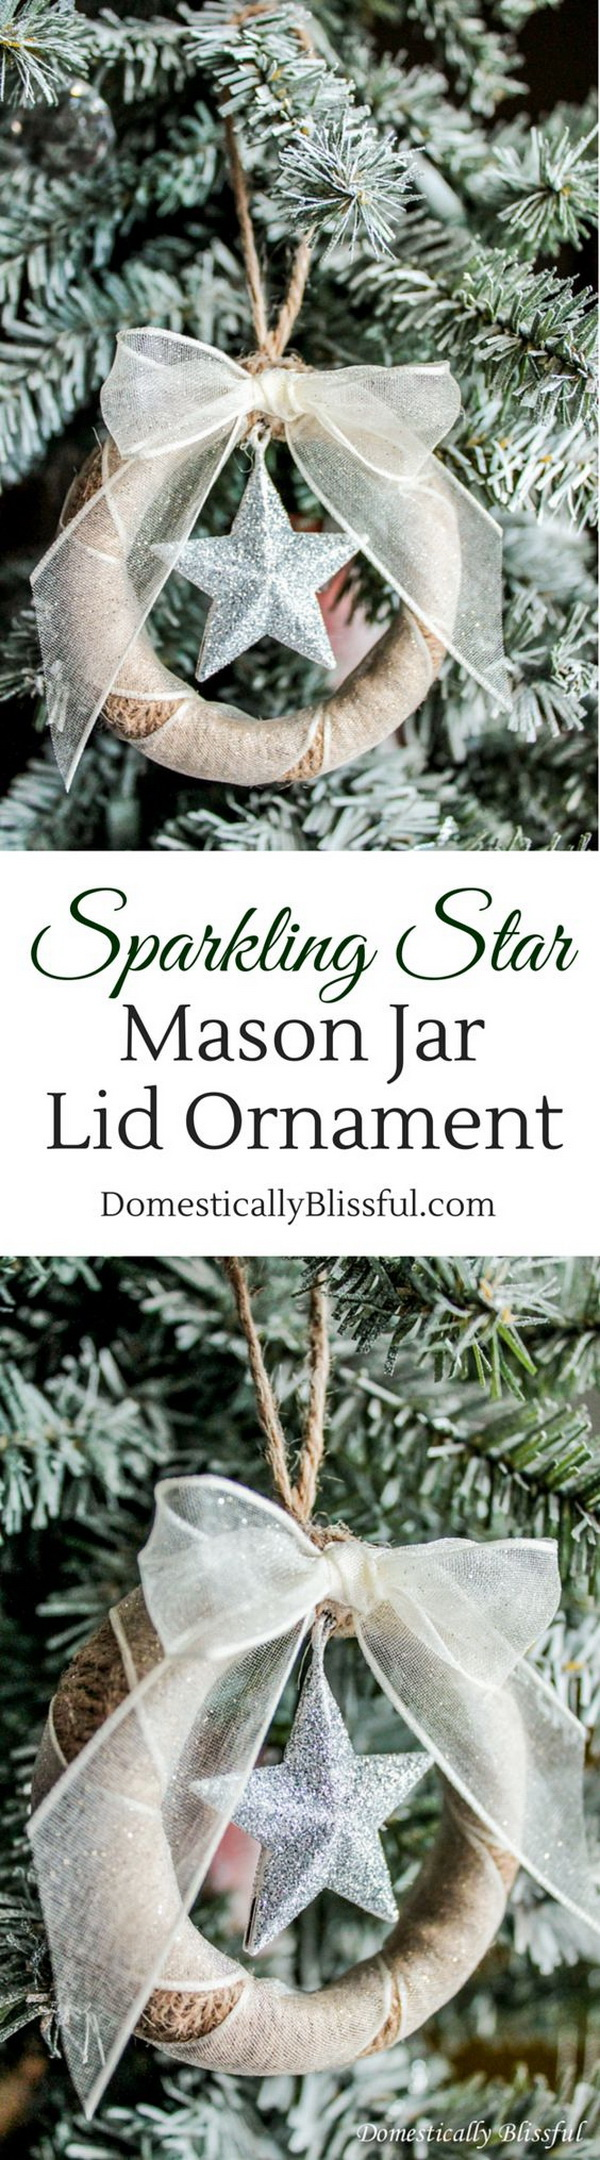 Sparkling Star Mason Jar Lid Ornament. An inexpensive yet beautiful way to add rustic warm and charm to your Christmas tree with these sparkling star mason jar lid ornaments!